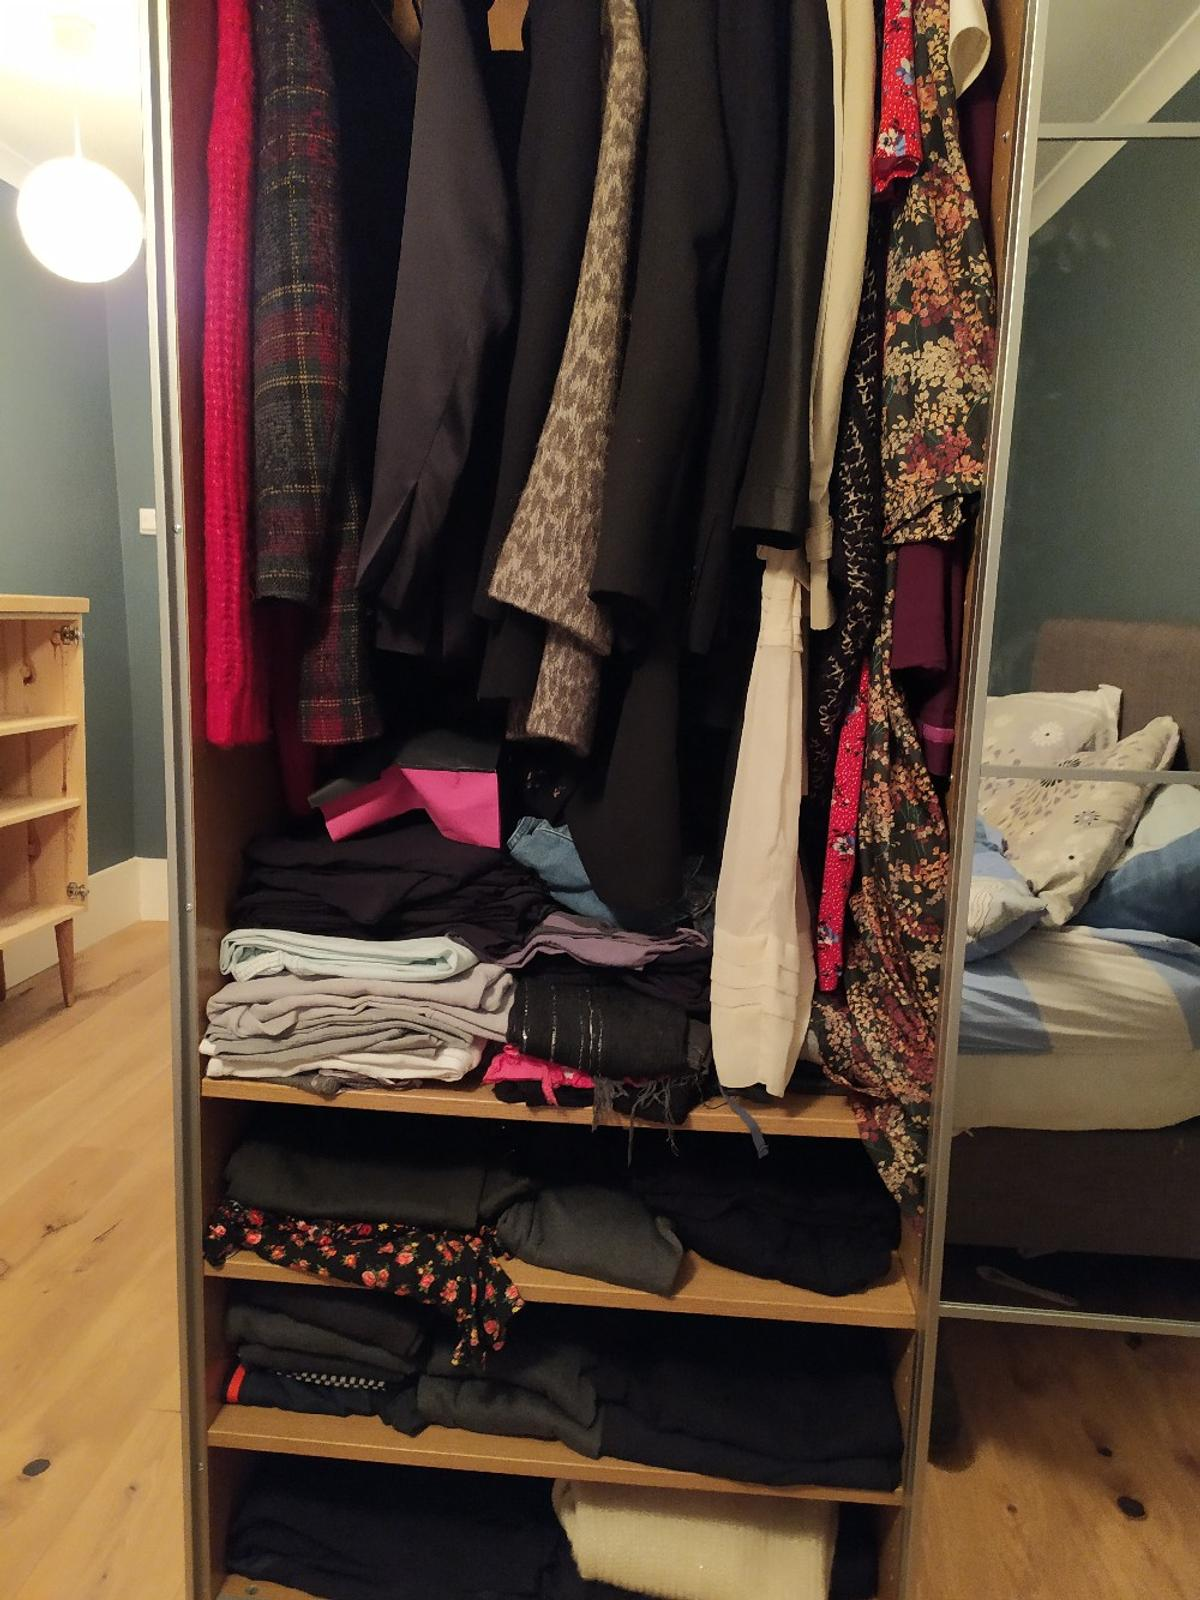 IKEA Pax wardrobe in N5 Londres for